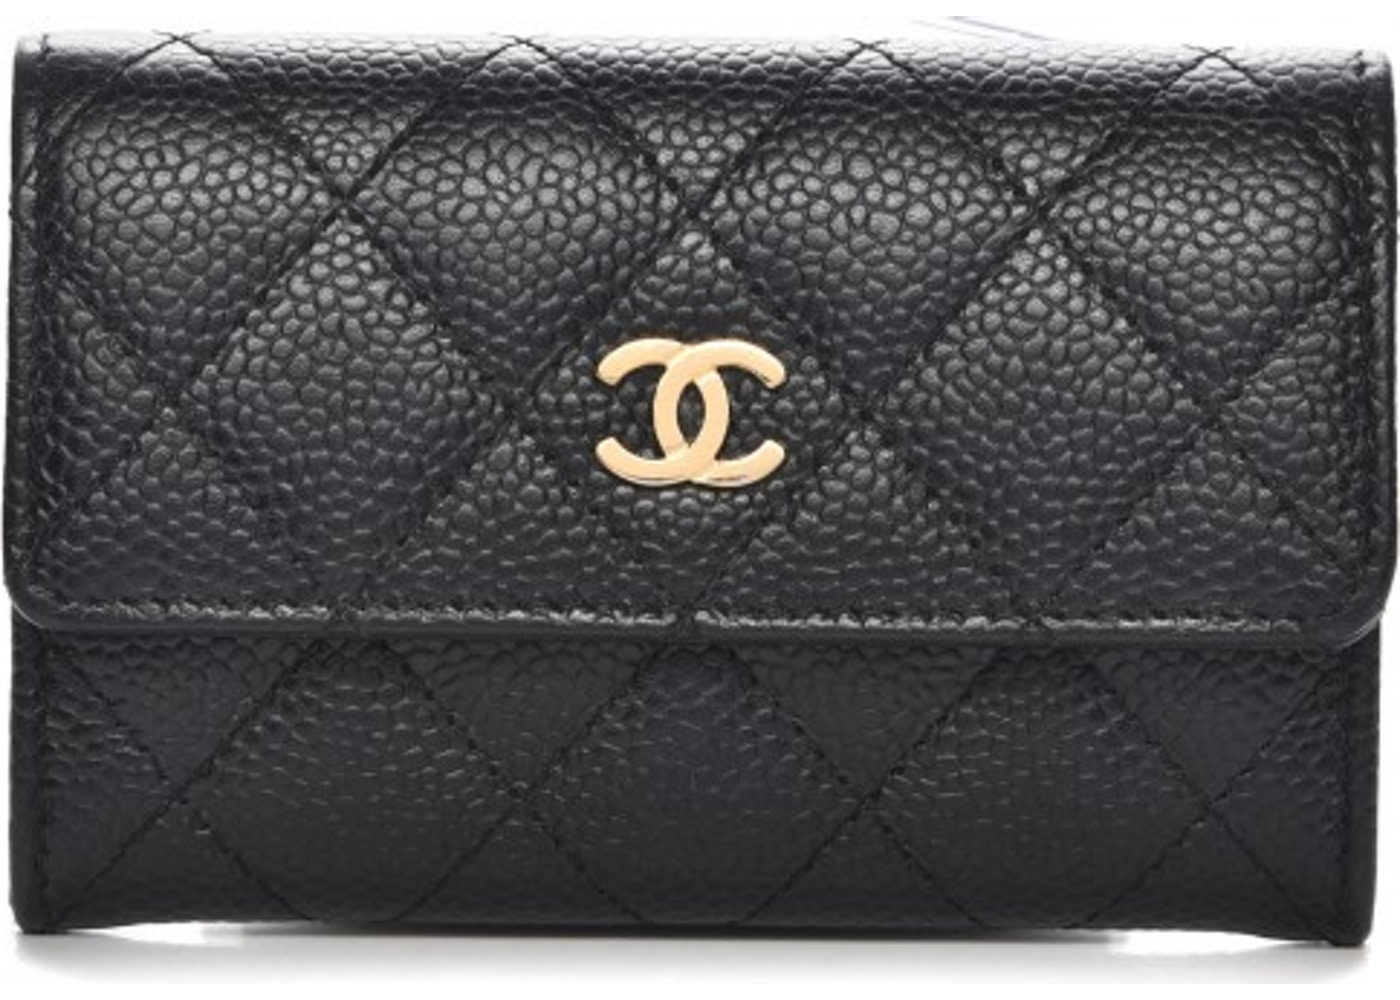 a94f2ba5807 Buy   Sell Chanel Handbags - Lowest Ask